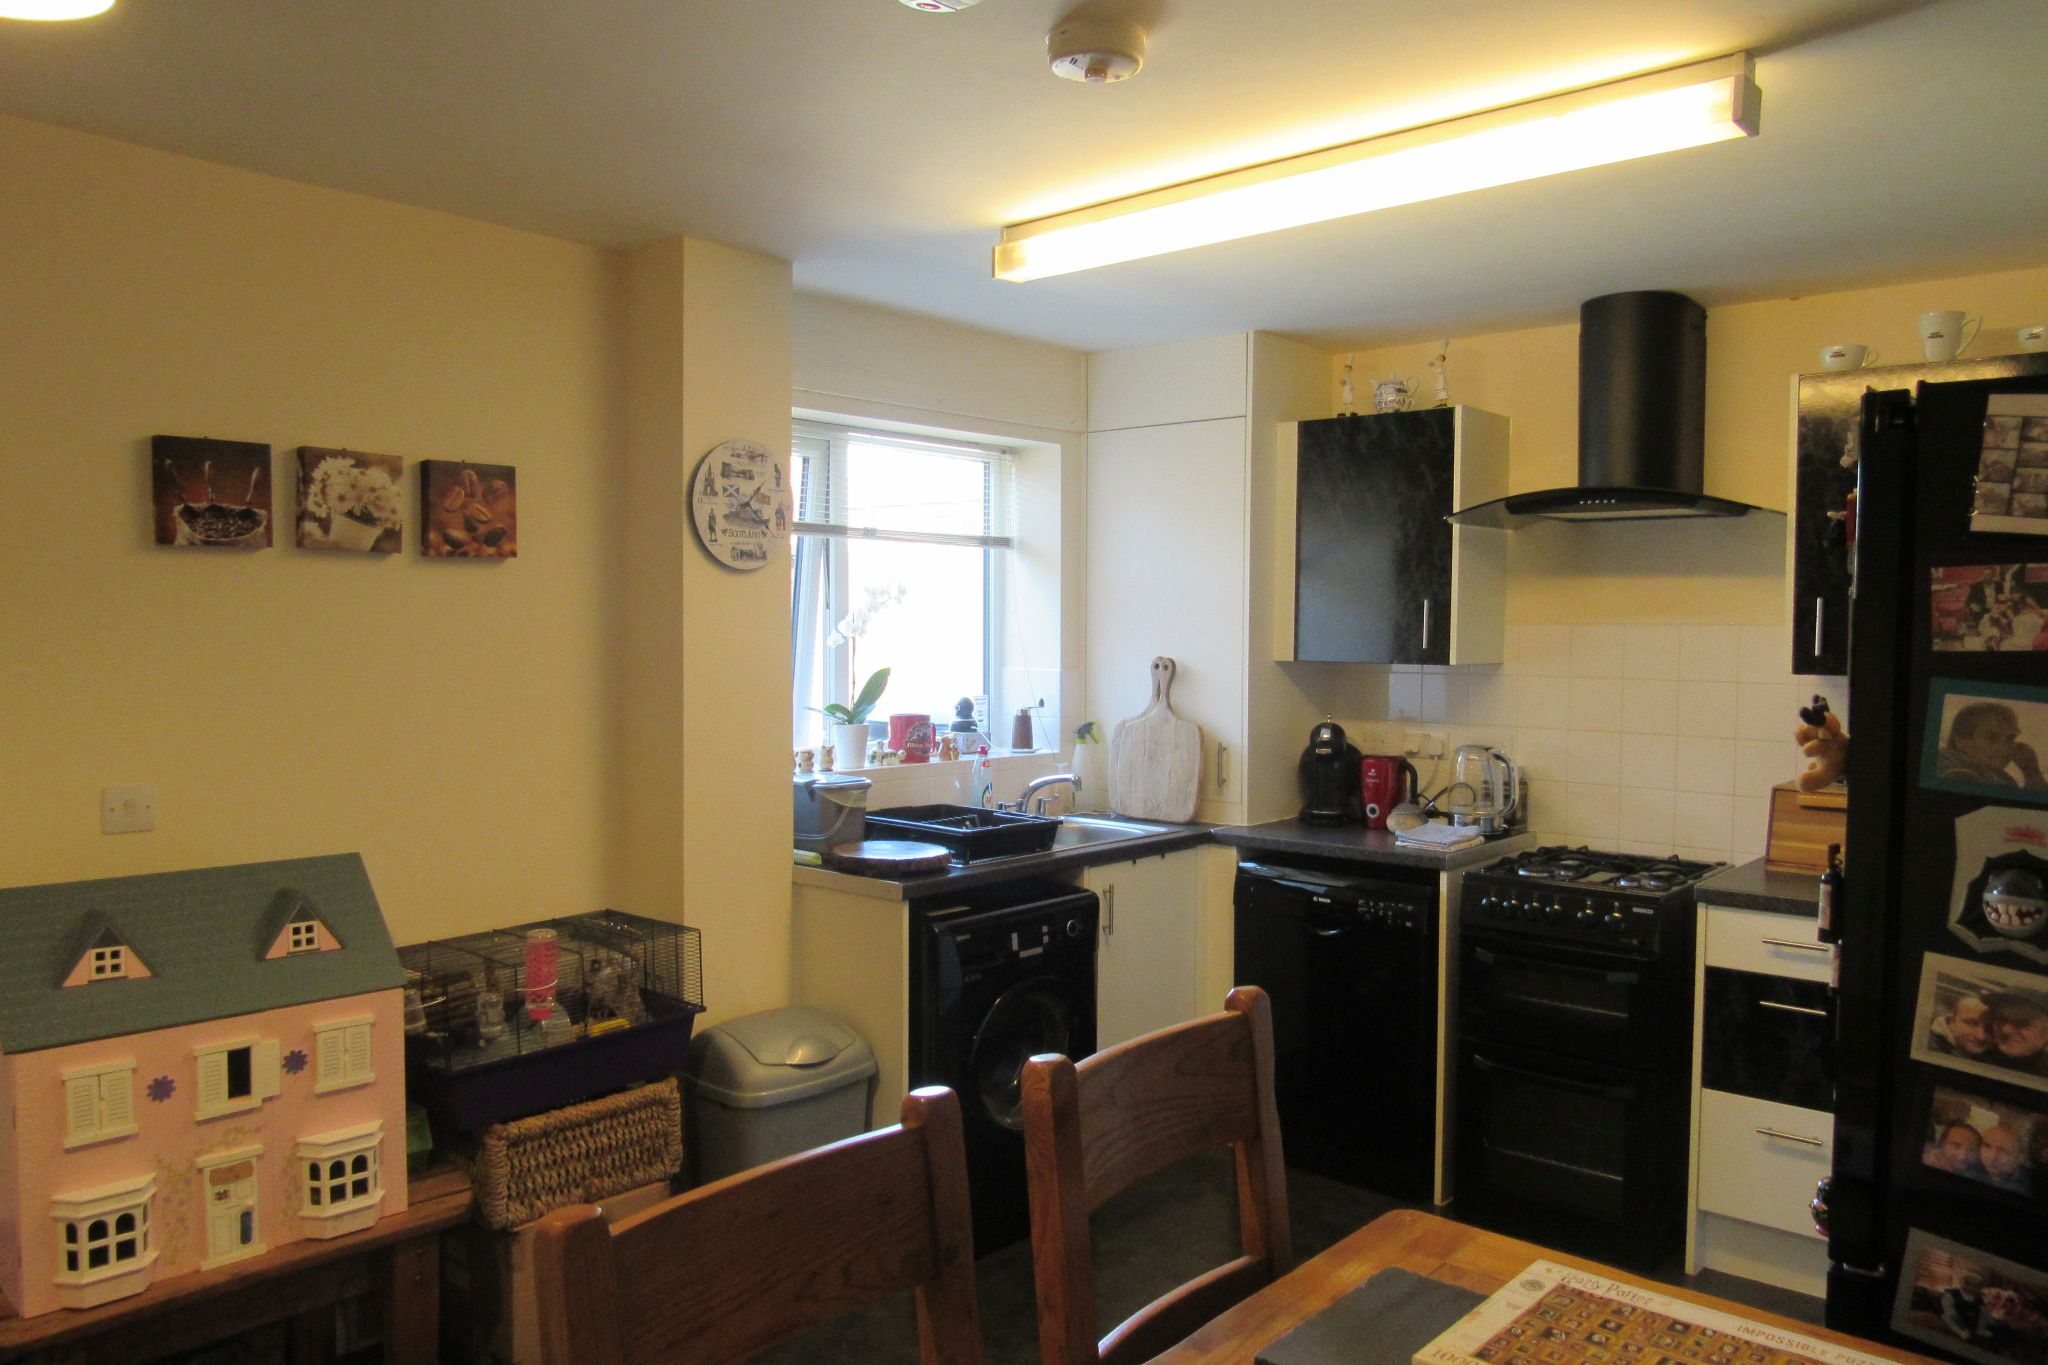 3 bedroom semi-detached house SSTC in Manchester - Photograph 5.